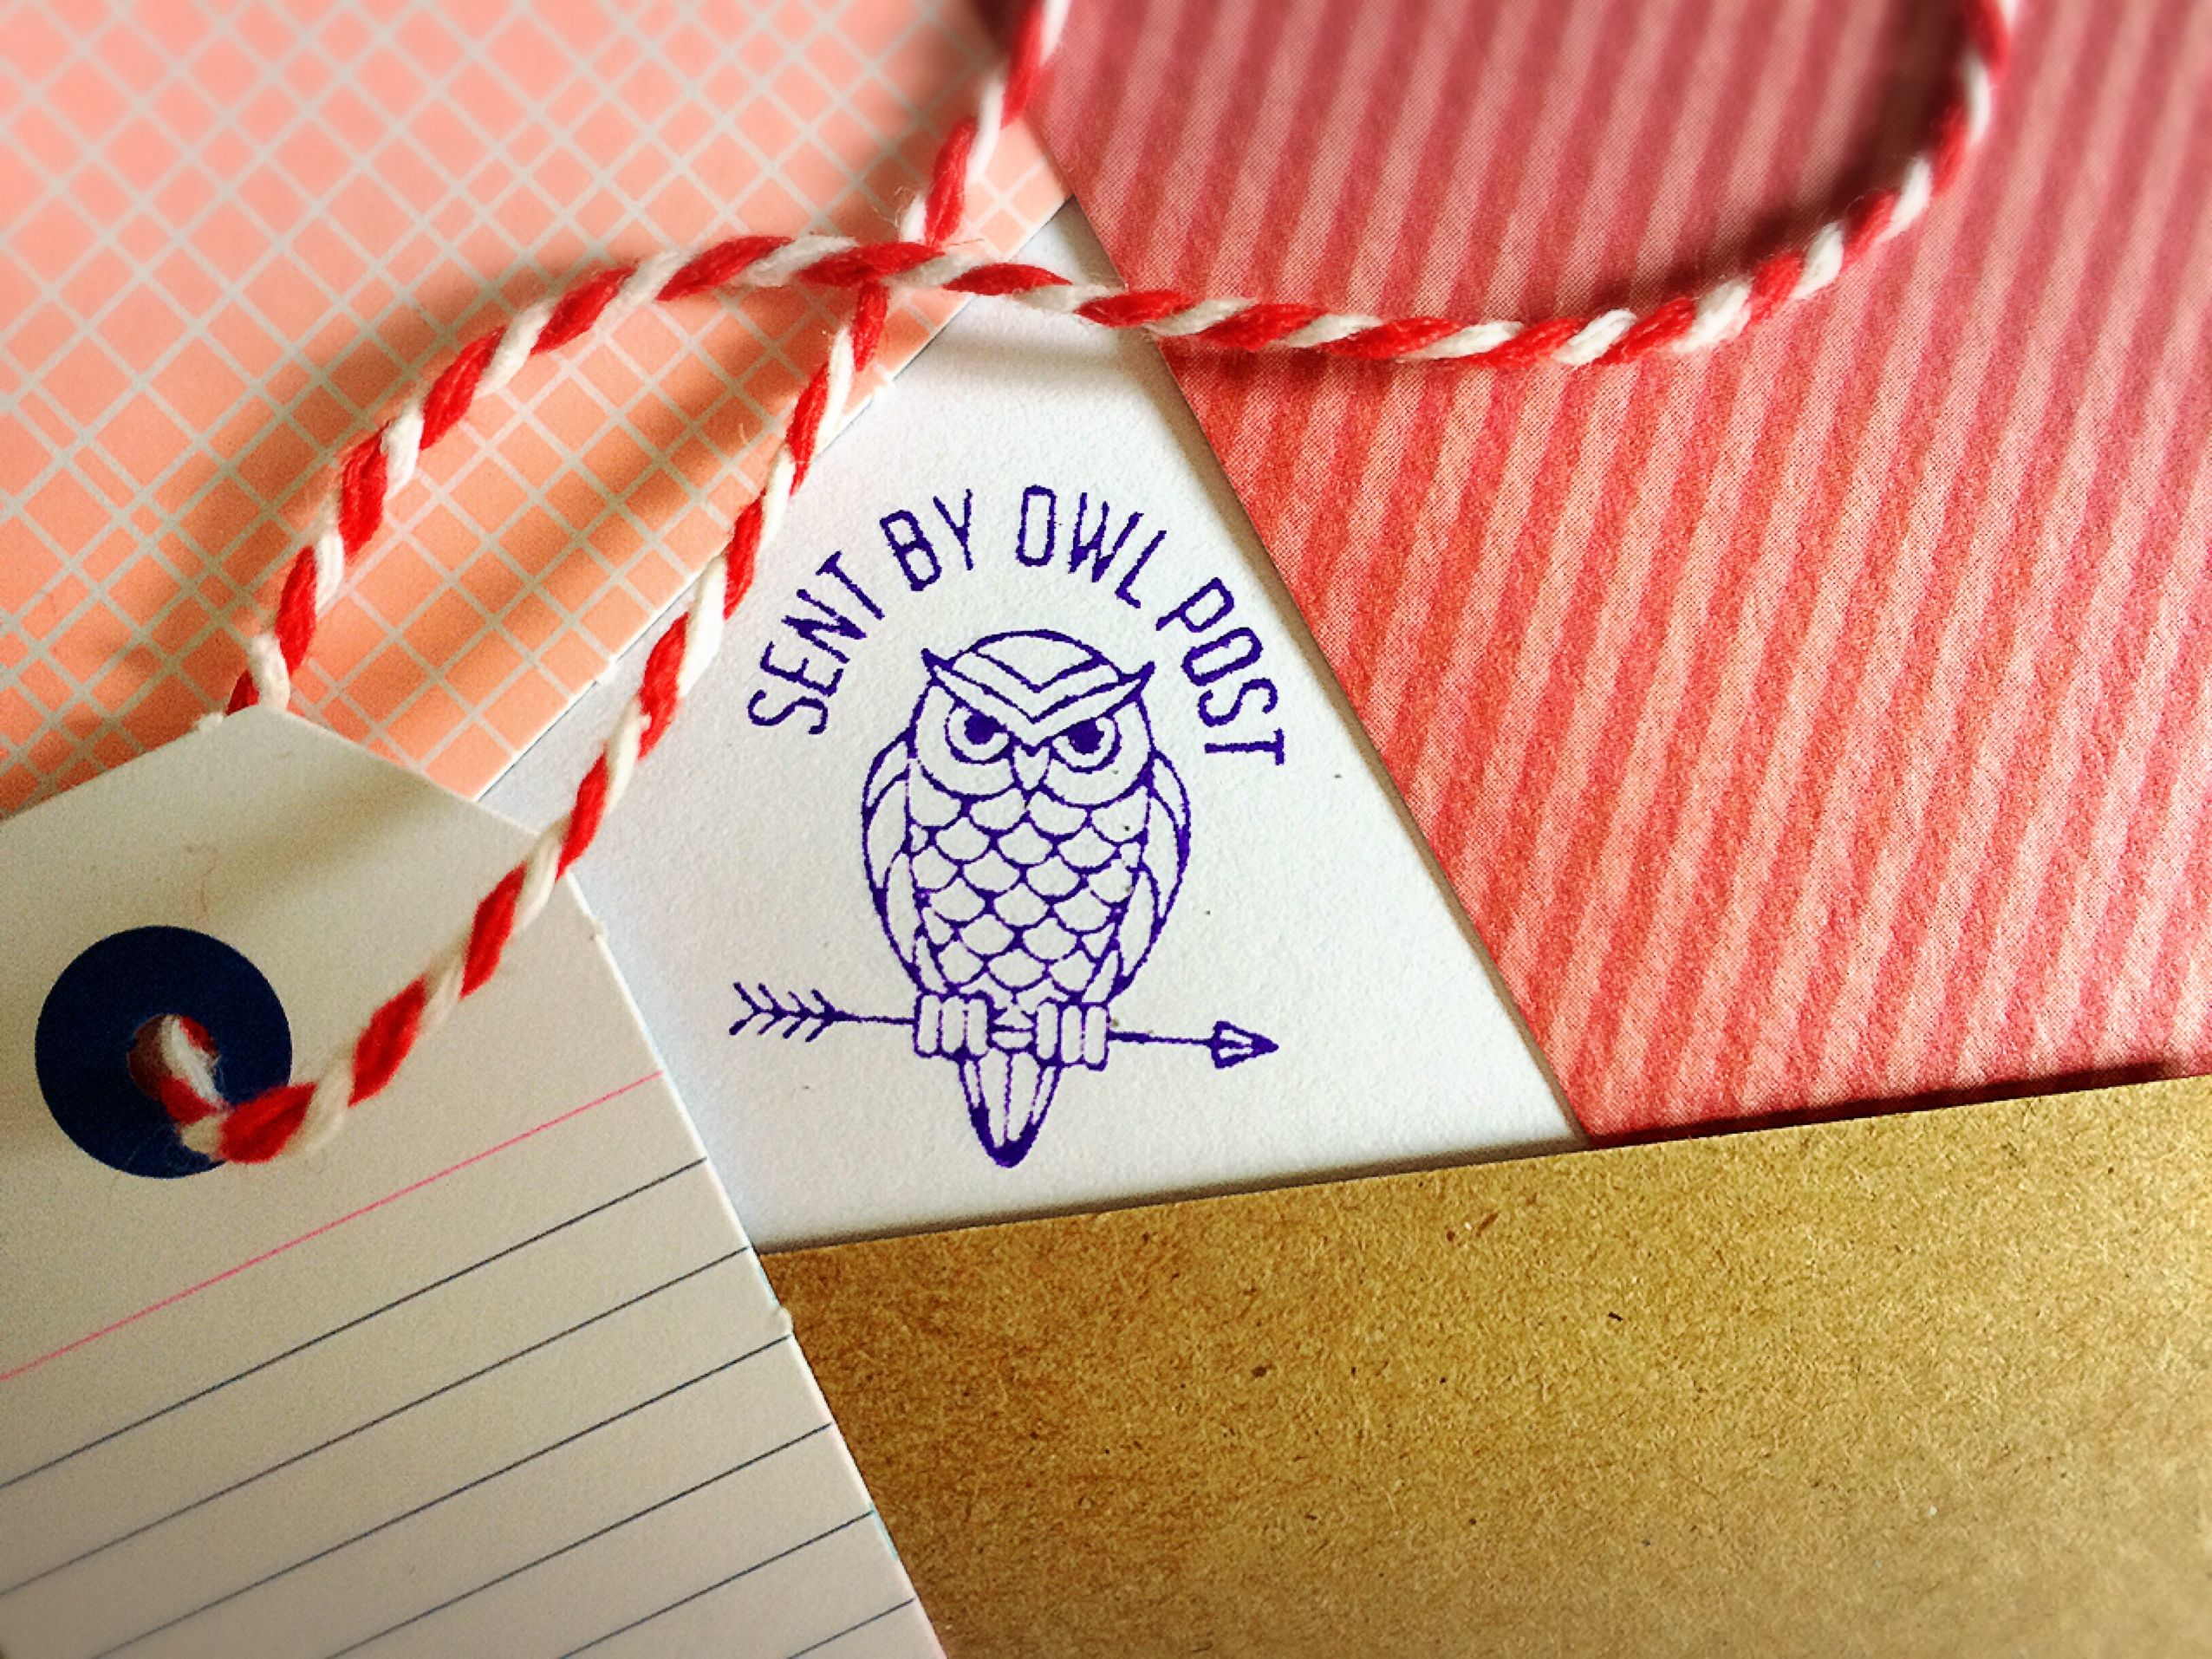 Owl Post Stamp Small Rubber Stamp Wizard Letters Owl Mail Harry Potter Inspired Hedwig Owl Post Mail Pen Pal Snailmail Happy Mail Post Stamp Pen Pal Letters Stamp